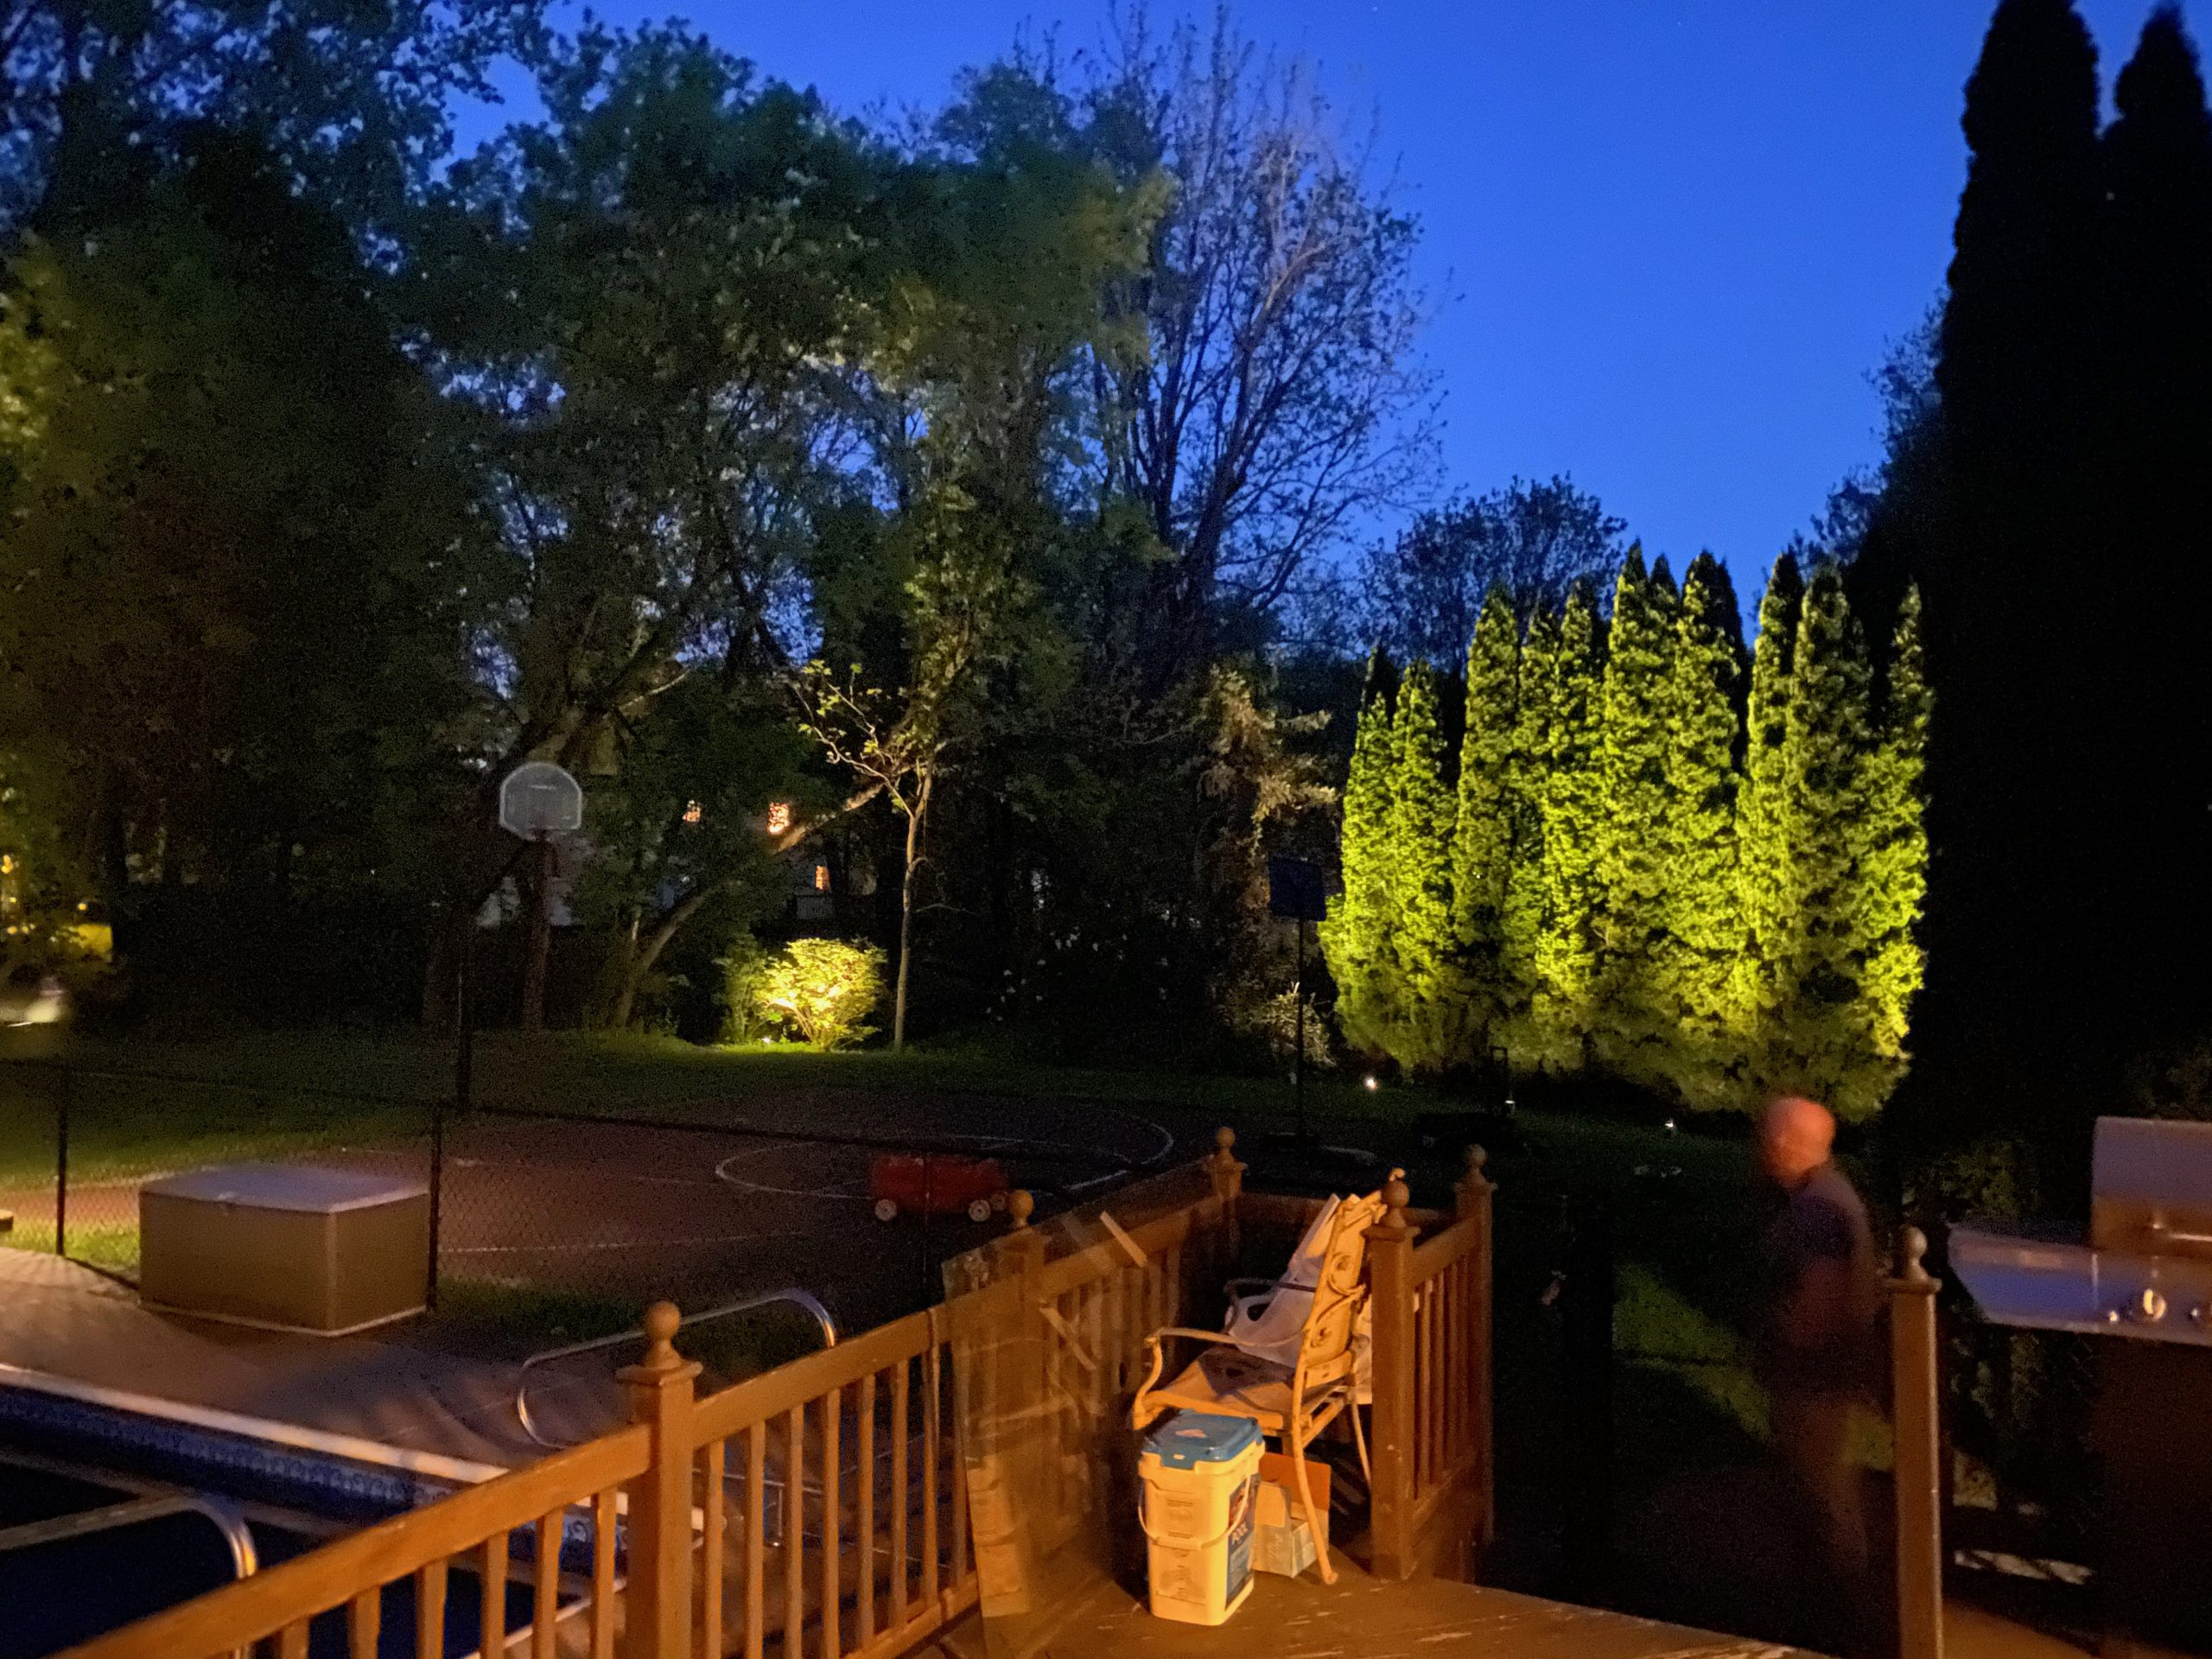 sitting on a porch looking out at landscape lighting